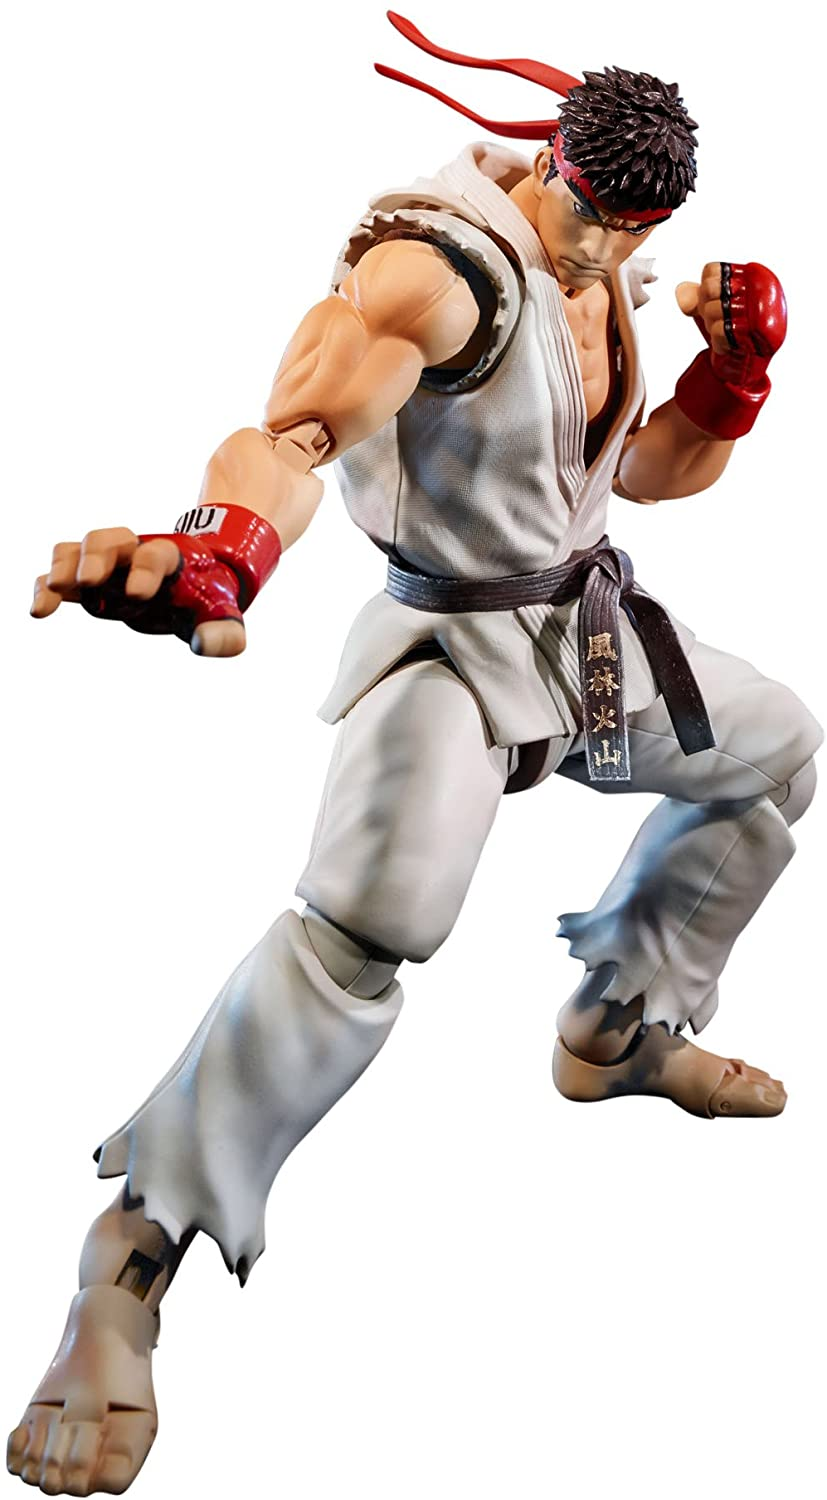 Bandai Tamashii Nations S.H. Figuarts Ryu Street Fighter Action Figure 150mm